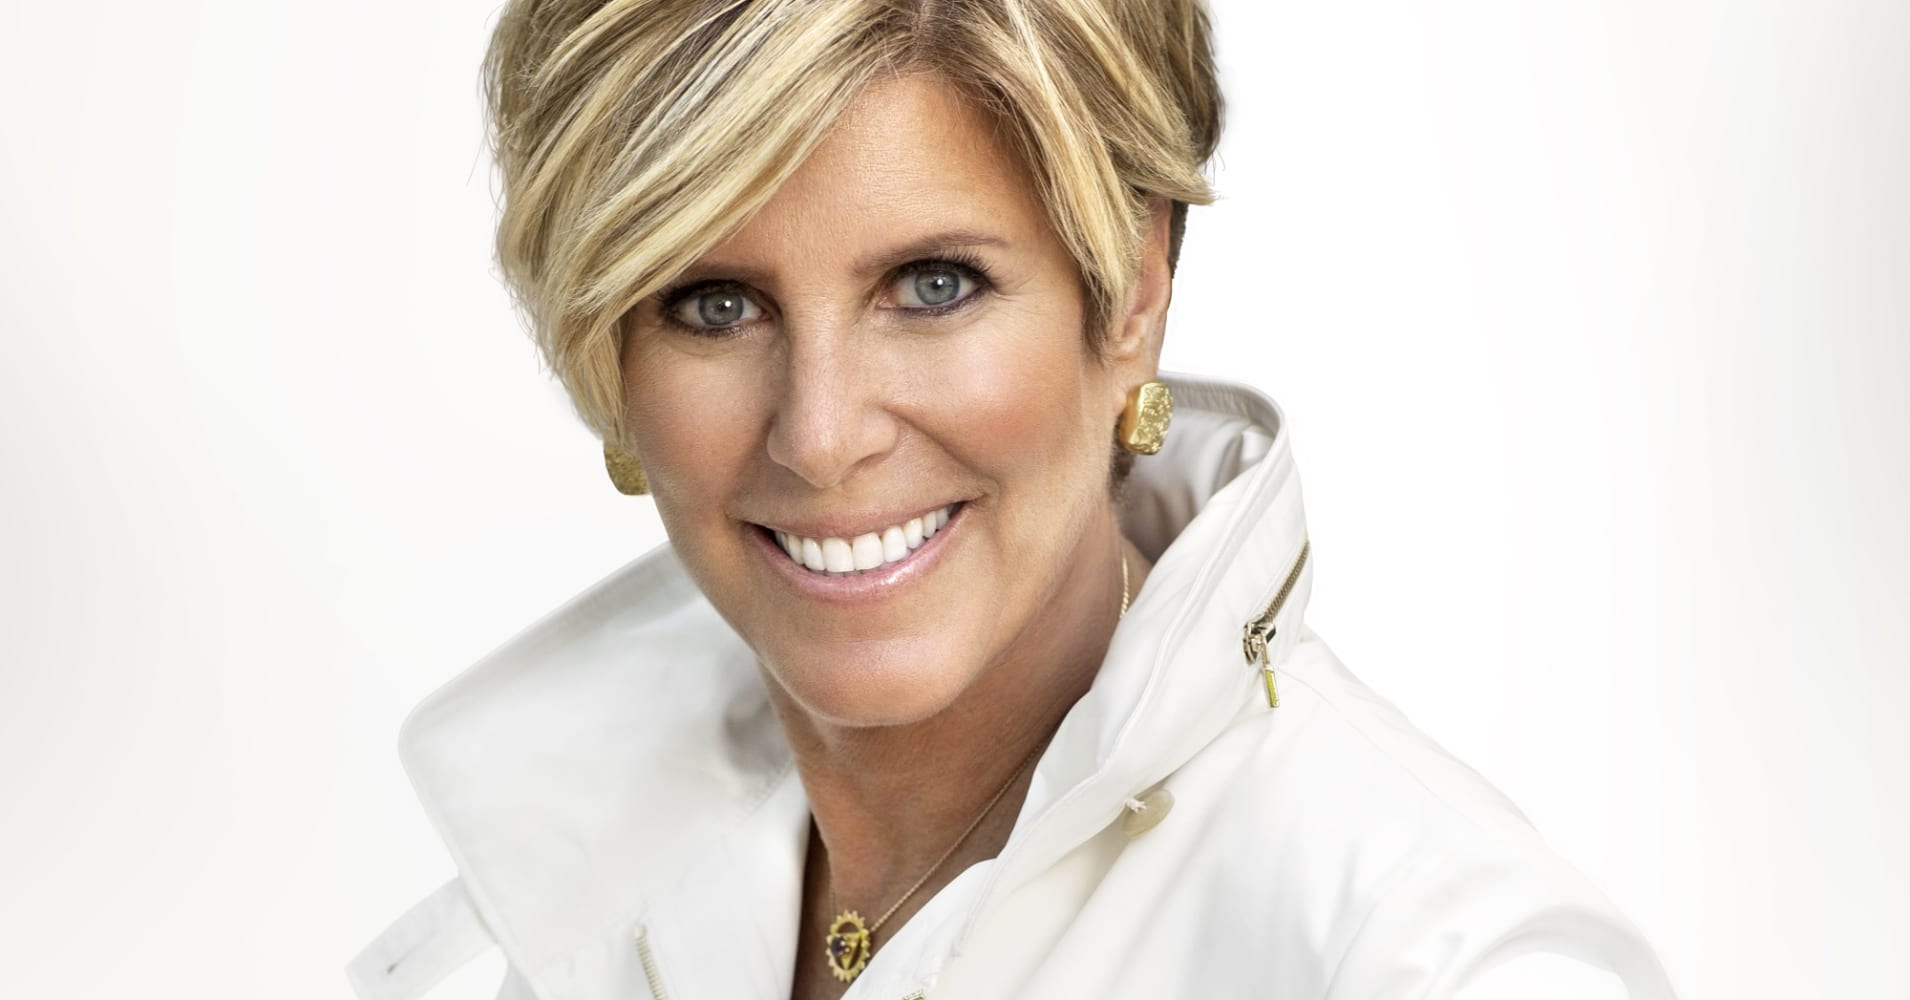 Suze Orman's No. 1 tip for succeeding at work